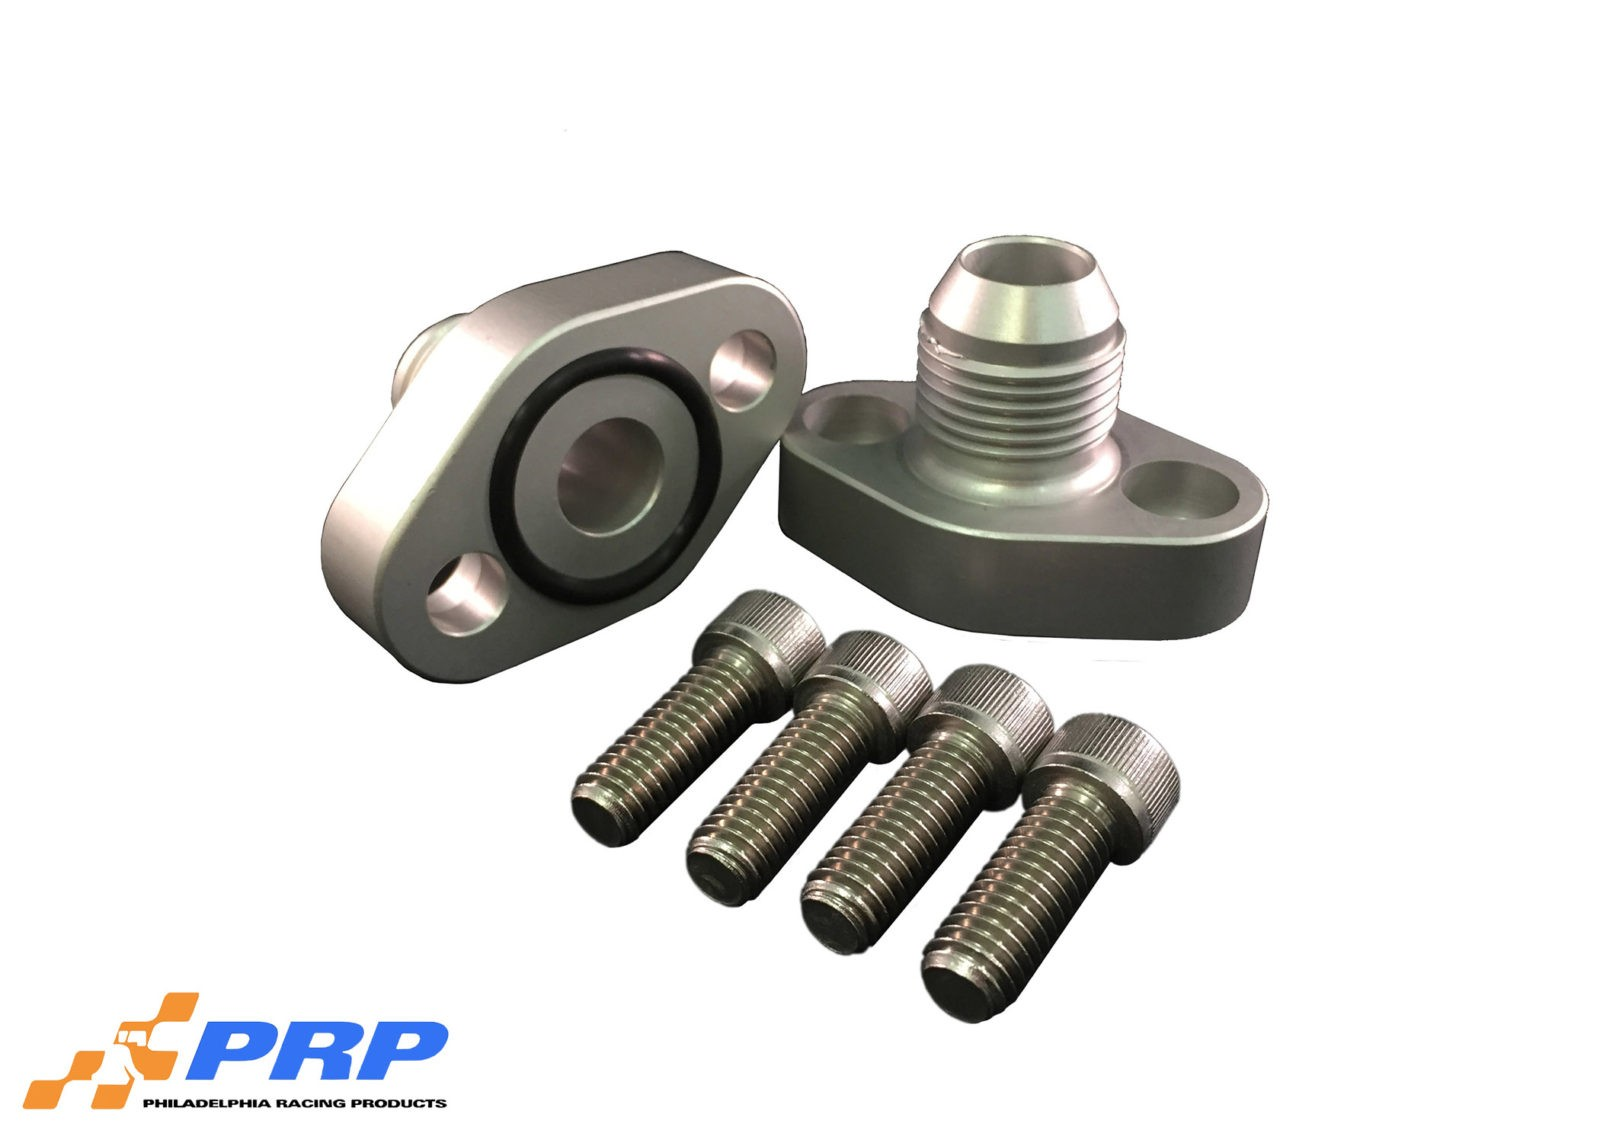 Clear SBC 12AN Block Adapters made by PRP Racing Products